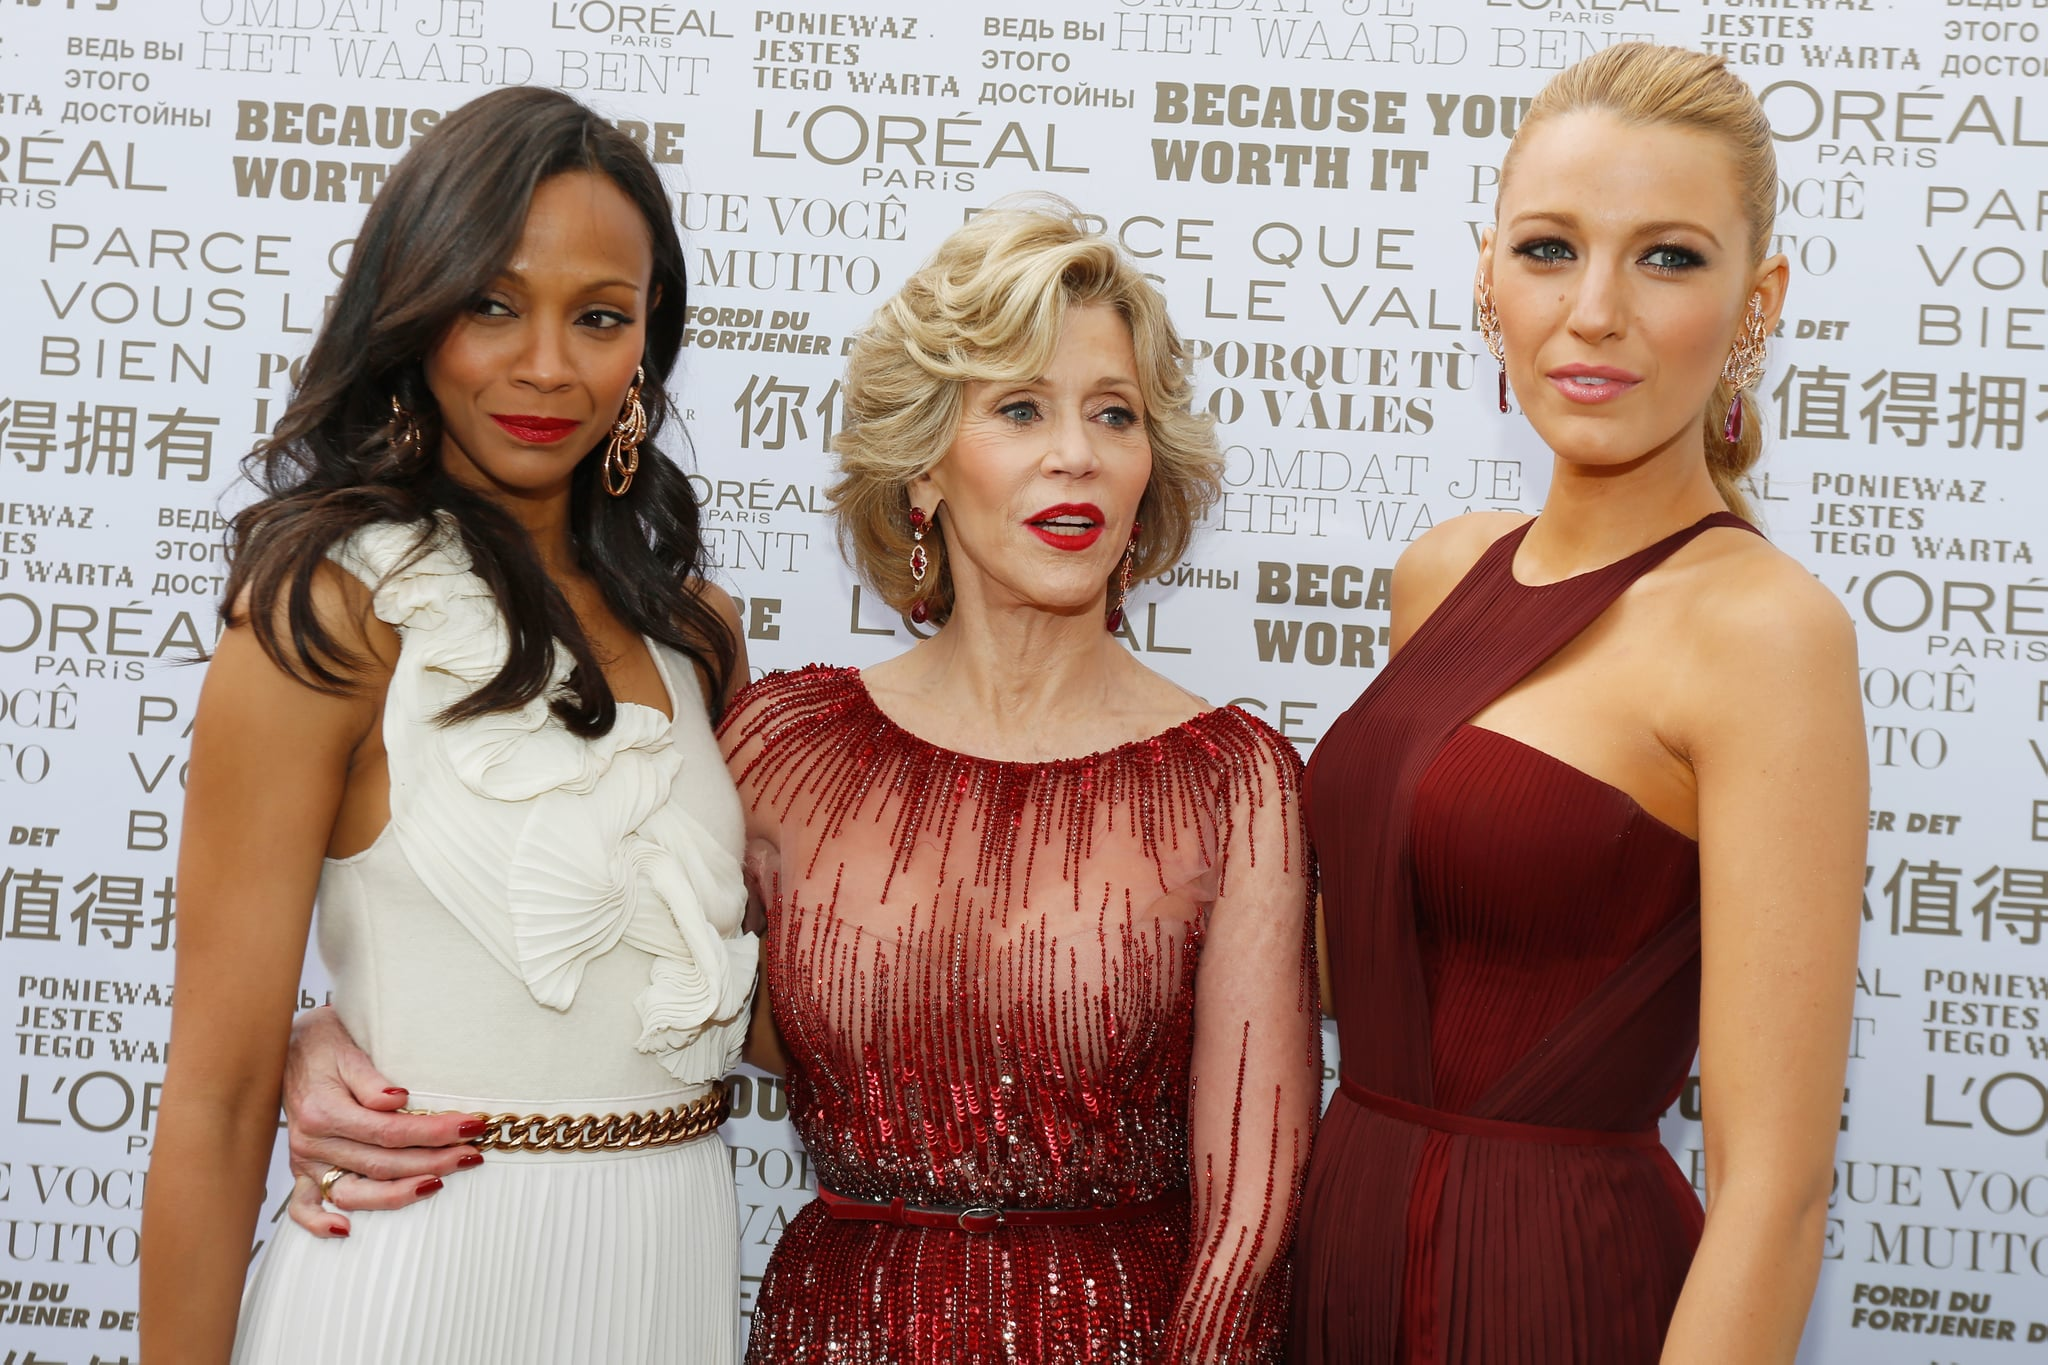 Zoe Saldana, Jane Fonda, and Blake Lively took a group photo at the opening ceremony.